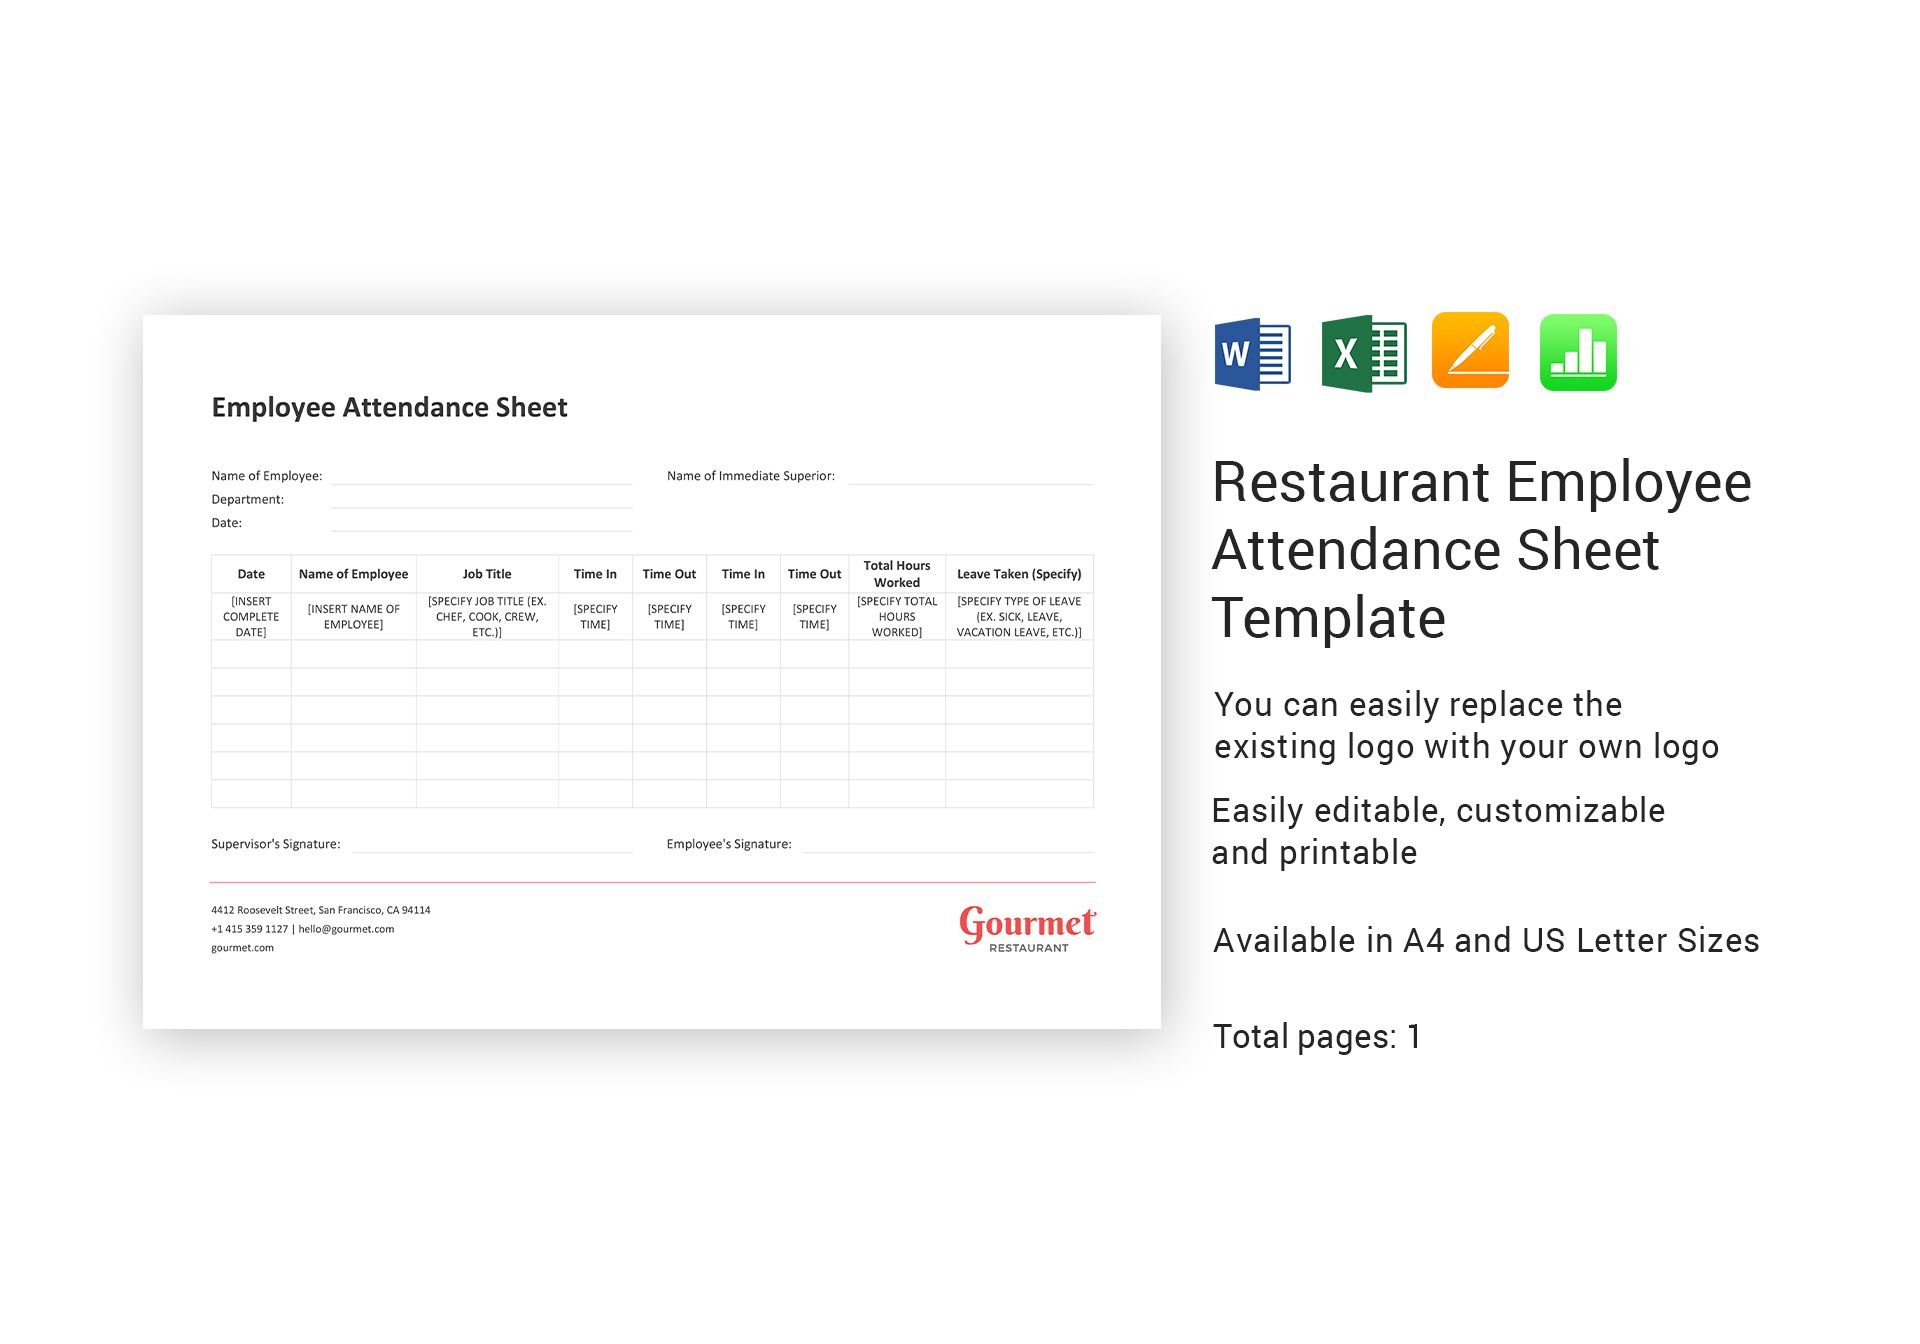 Restaurant Employee Attendance Sheet